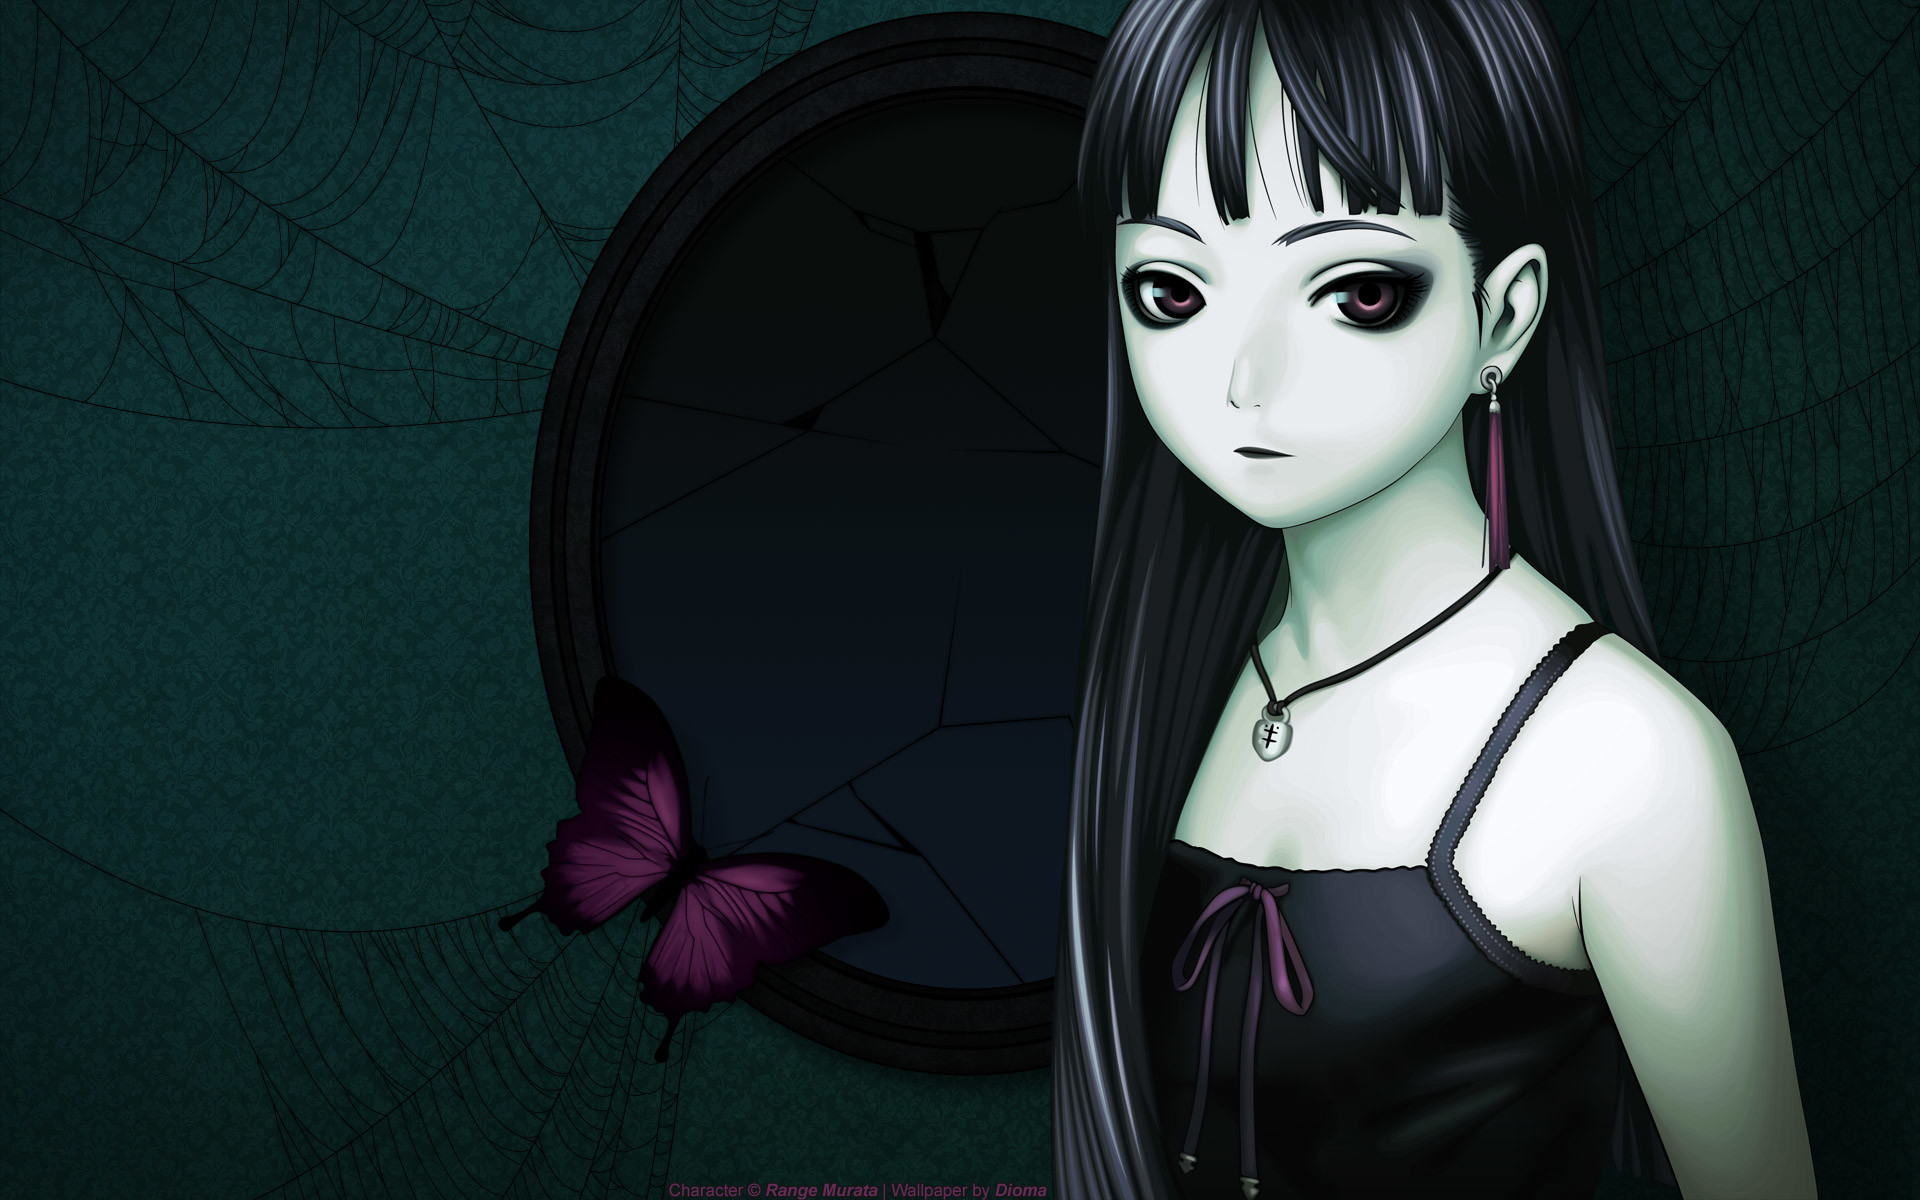 Download Anime Goth Girl Wallpaper | Full HD Wallpapers